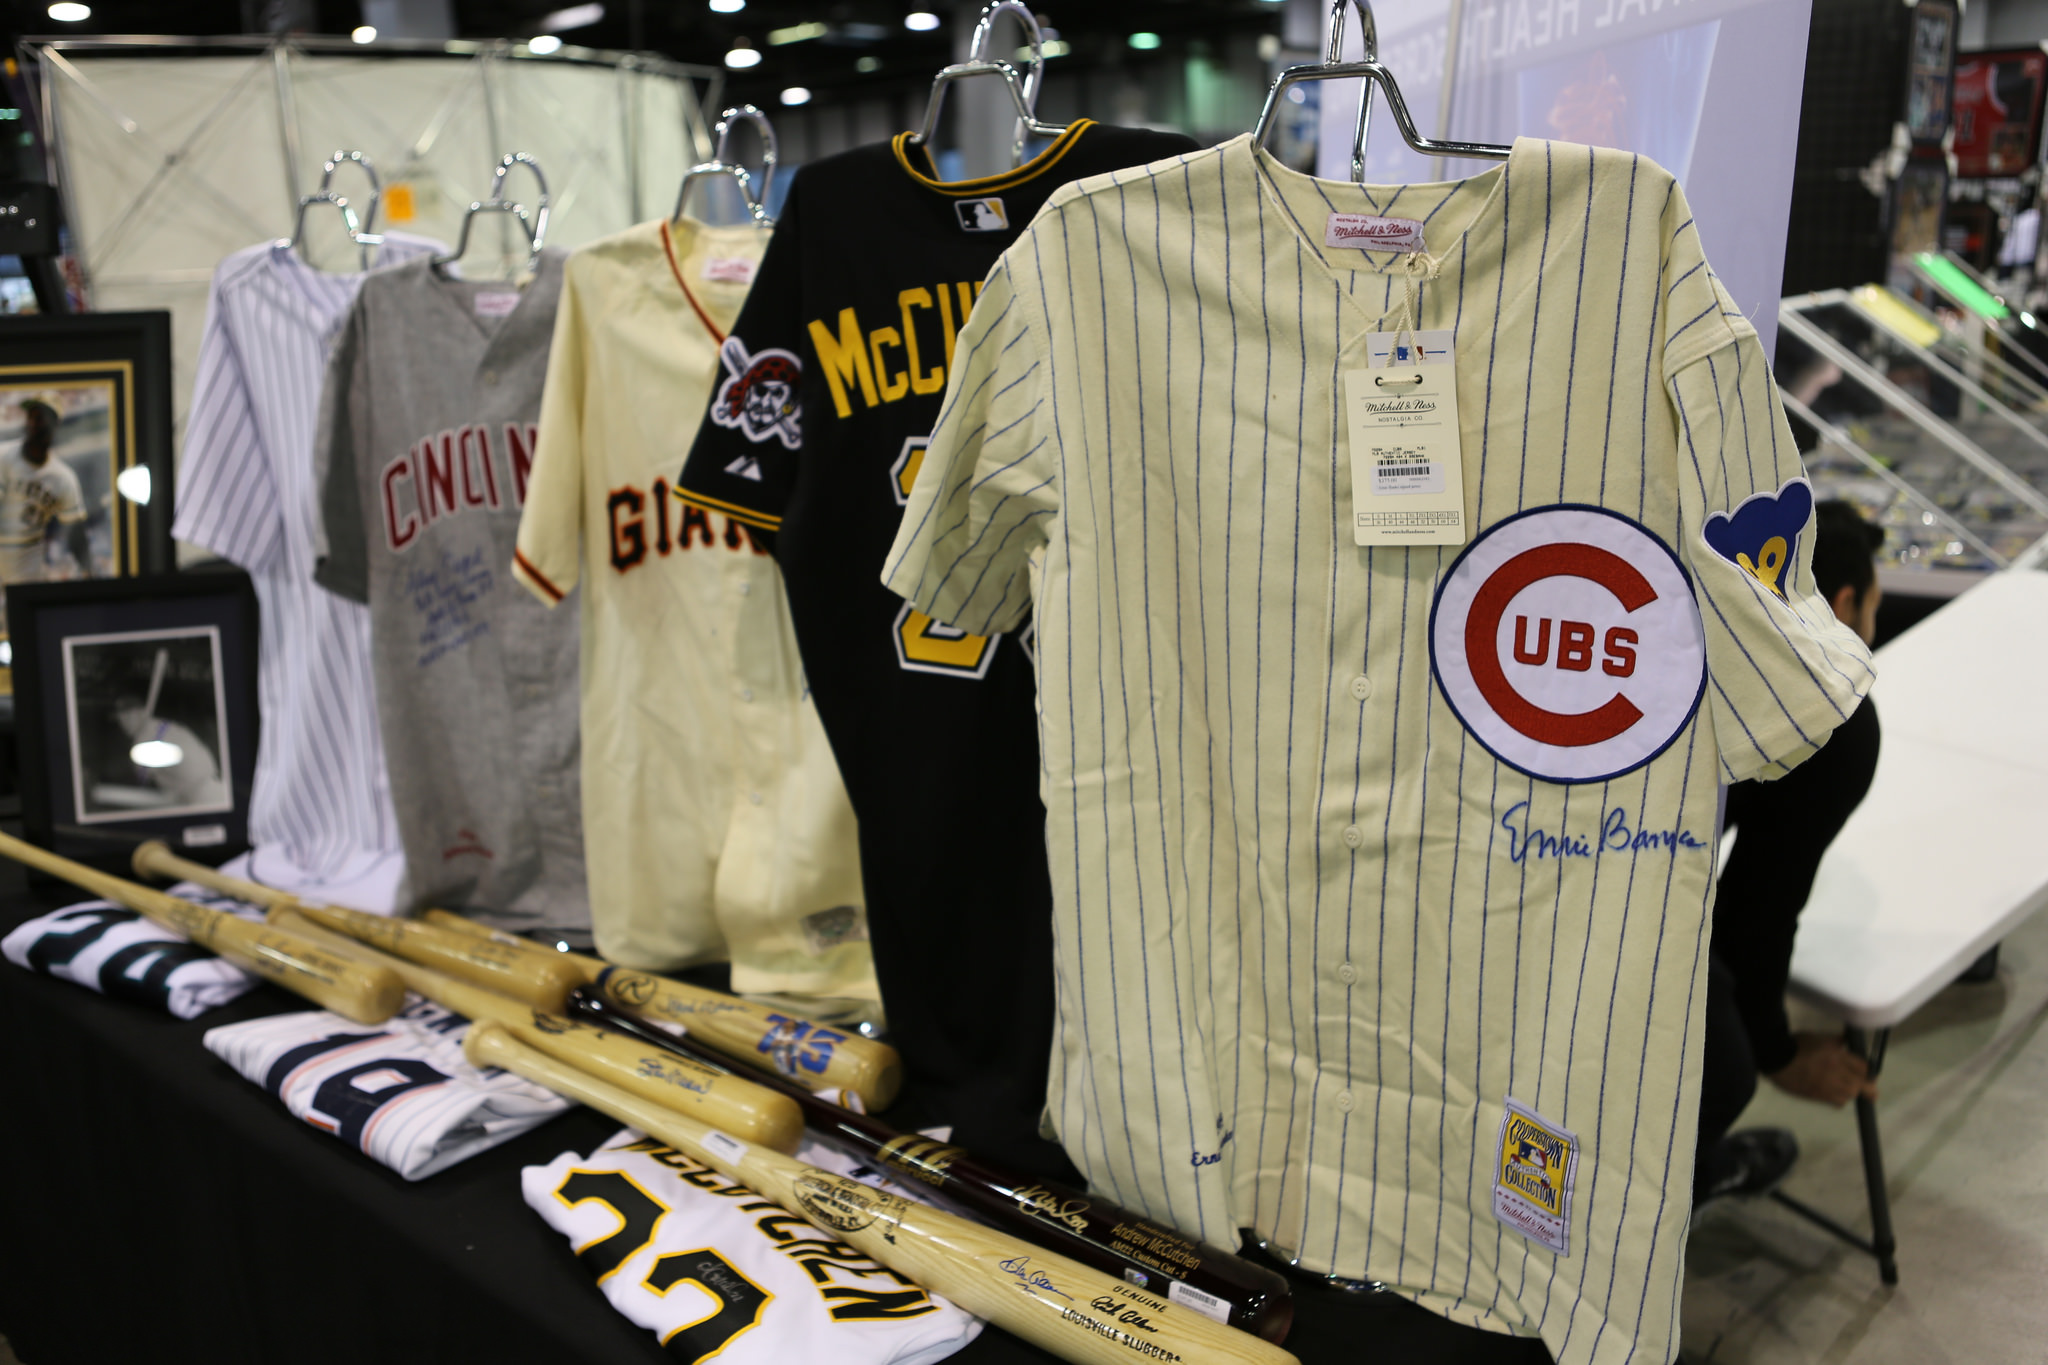 newest dc447 f4db1 Obsessed with Ernie Banks Chicago Cubs Google Rankings, this ...